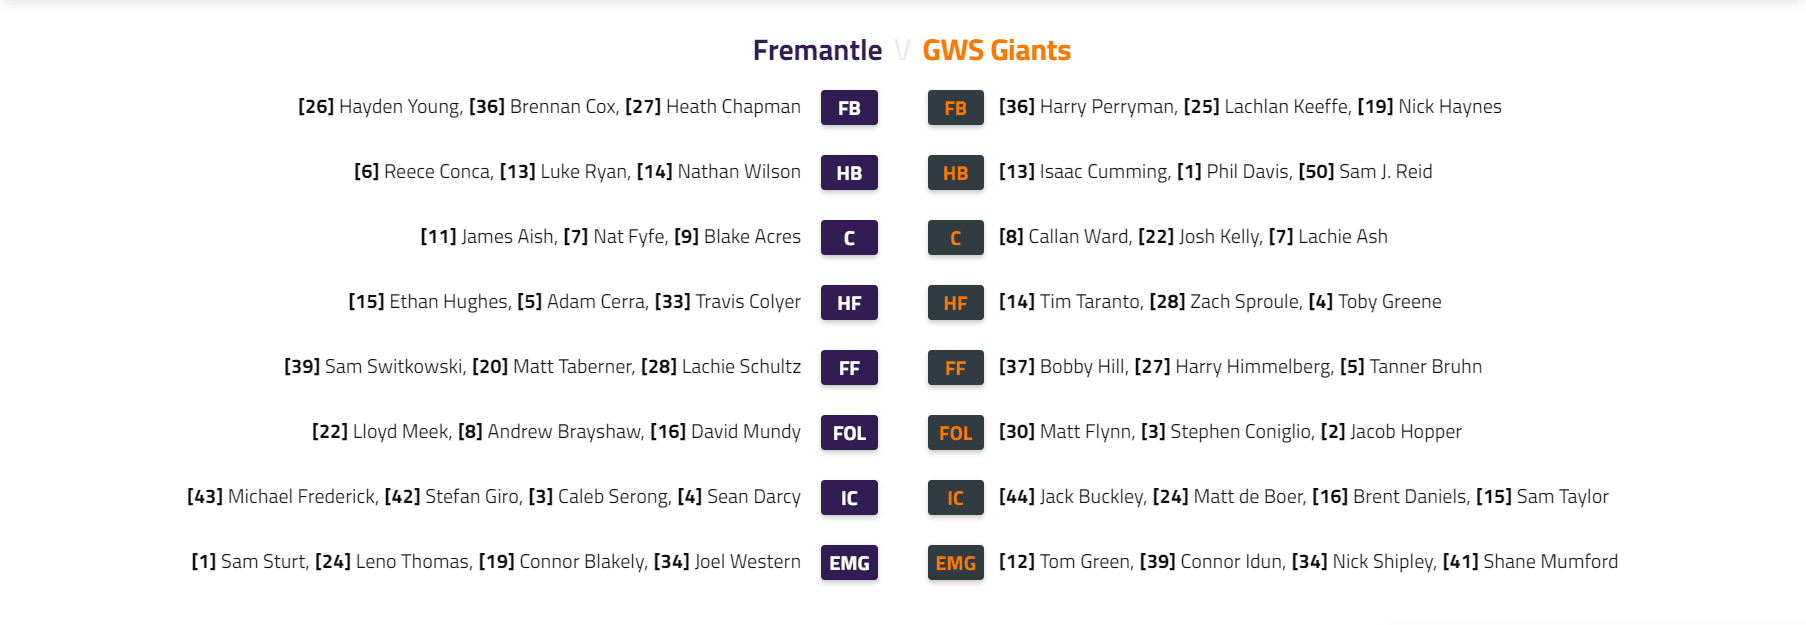 Capture - GWS v FRE teams.PNG